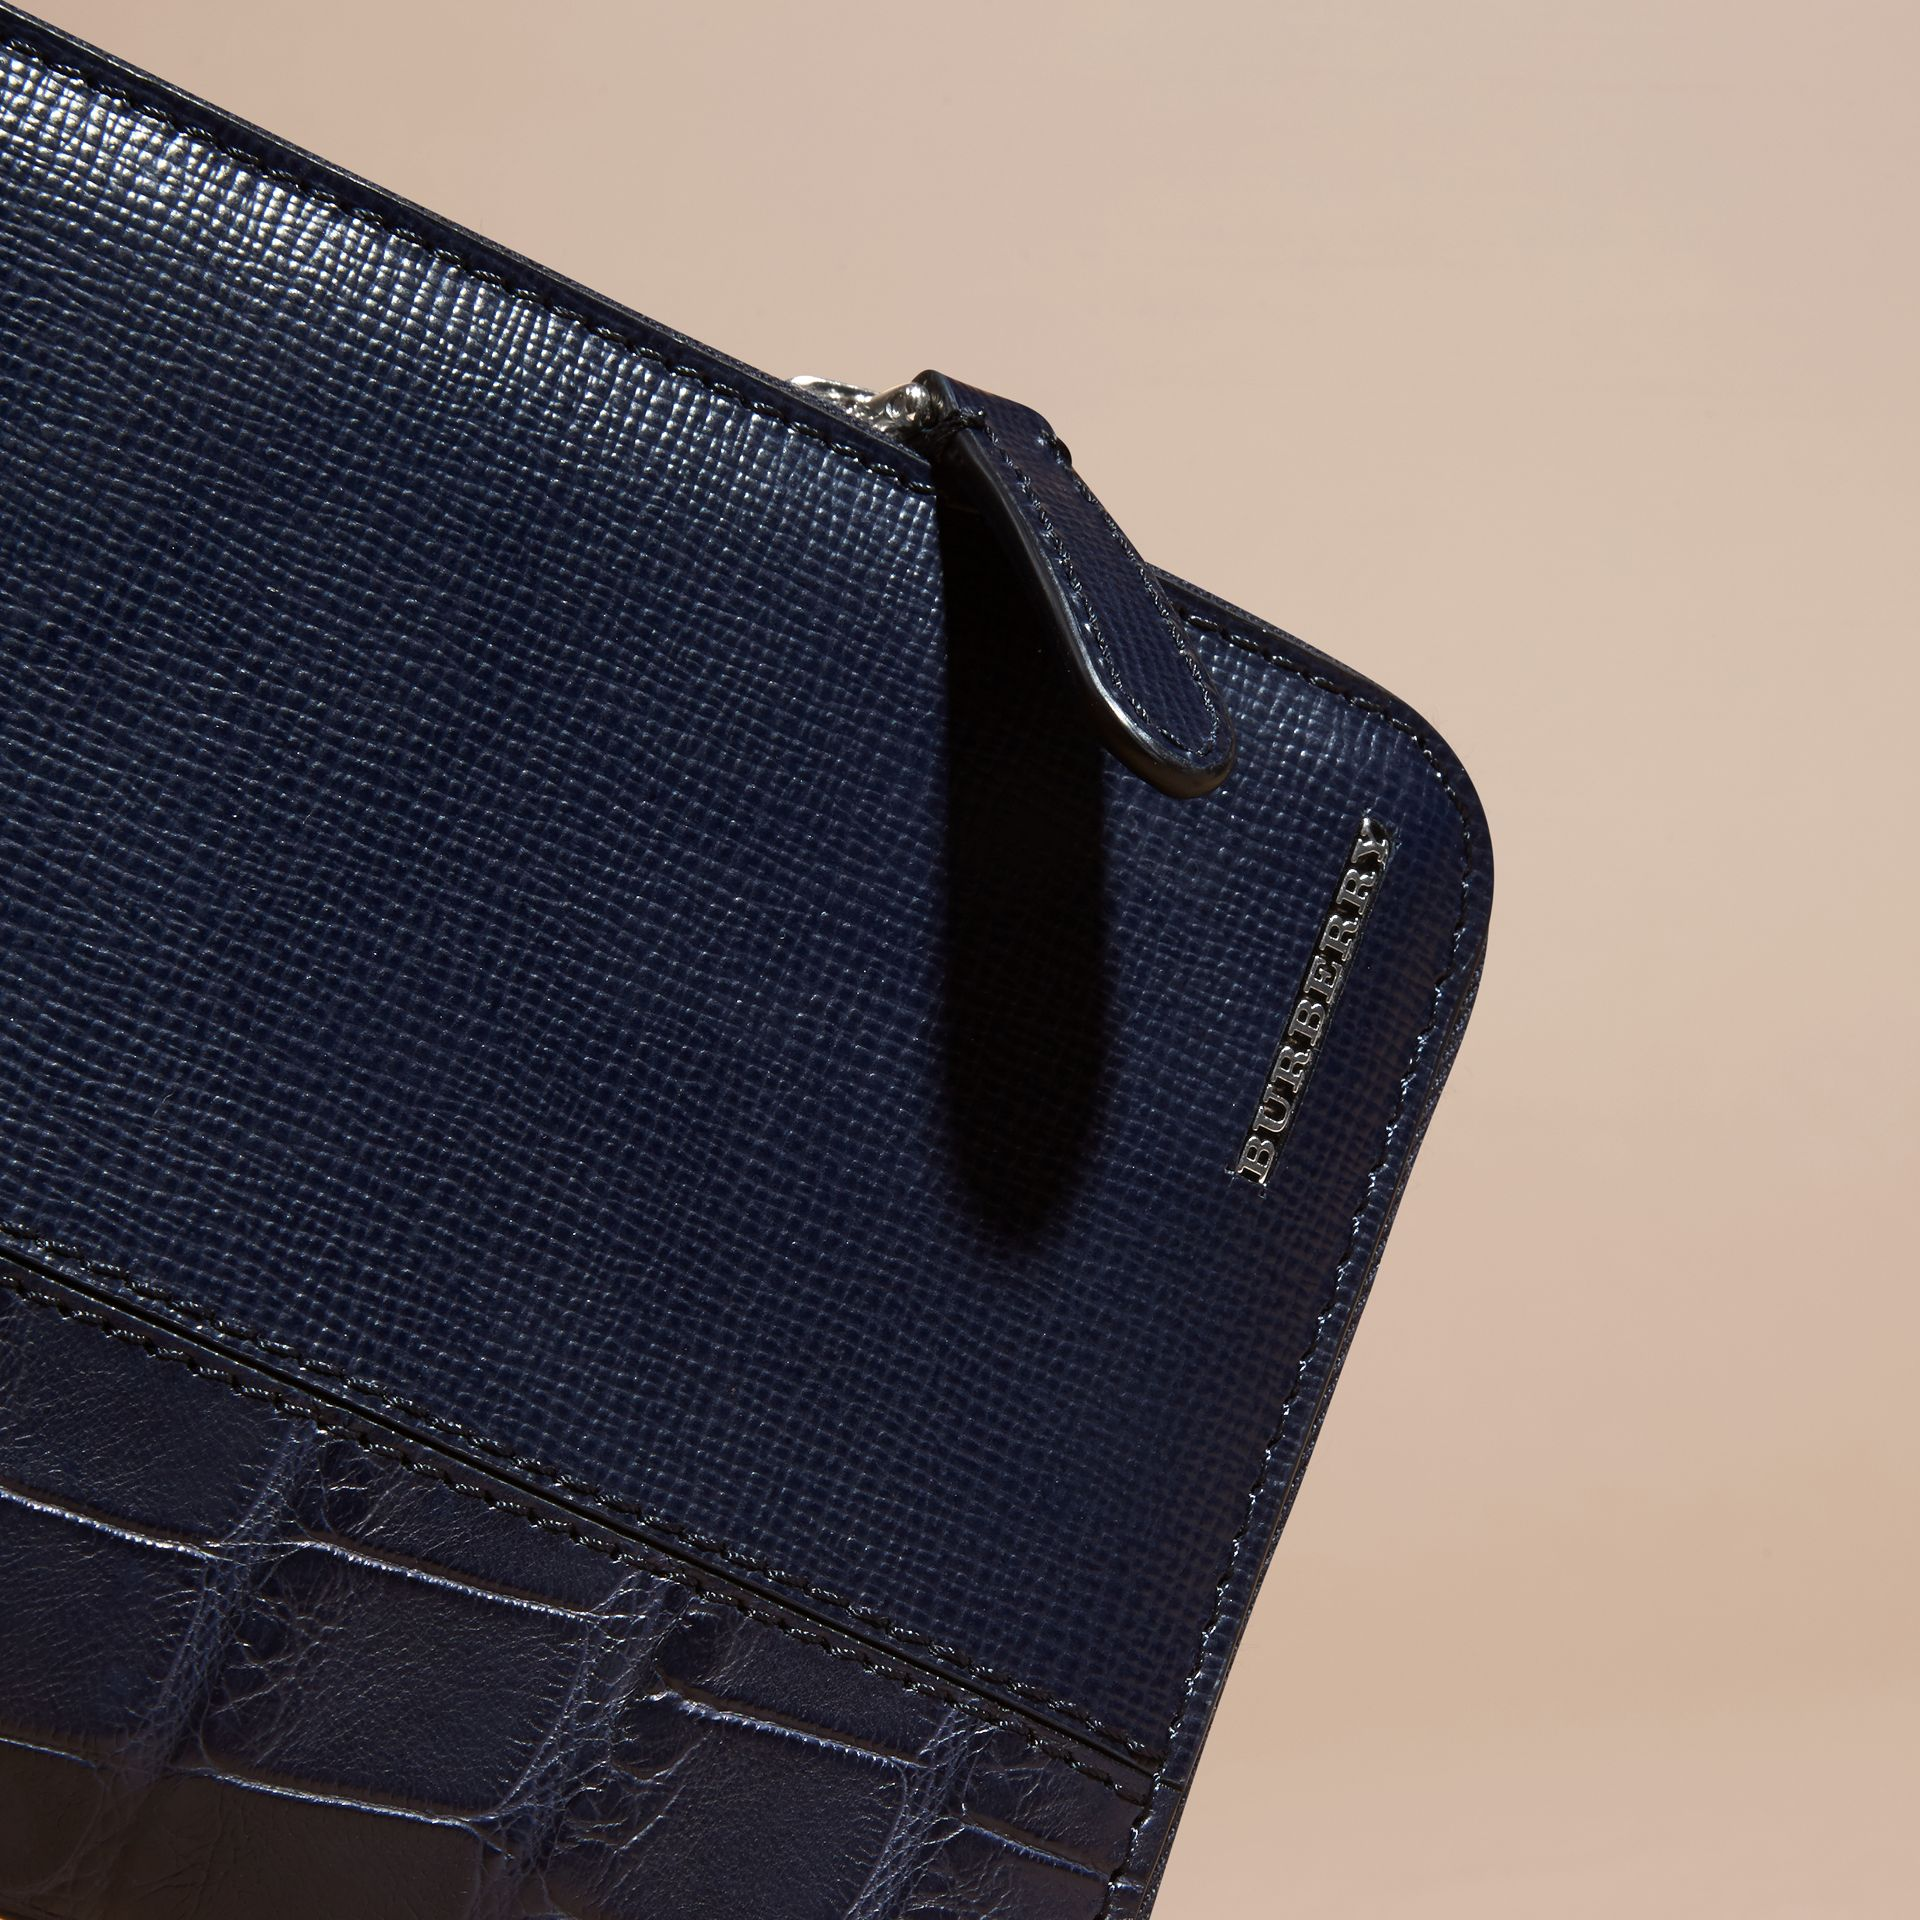 London Leather and Alligator Ziparound Wallet in Dark Navy - Men | Burberry Canada - gallery image 1